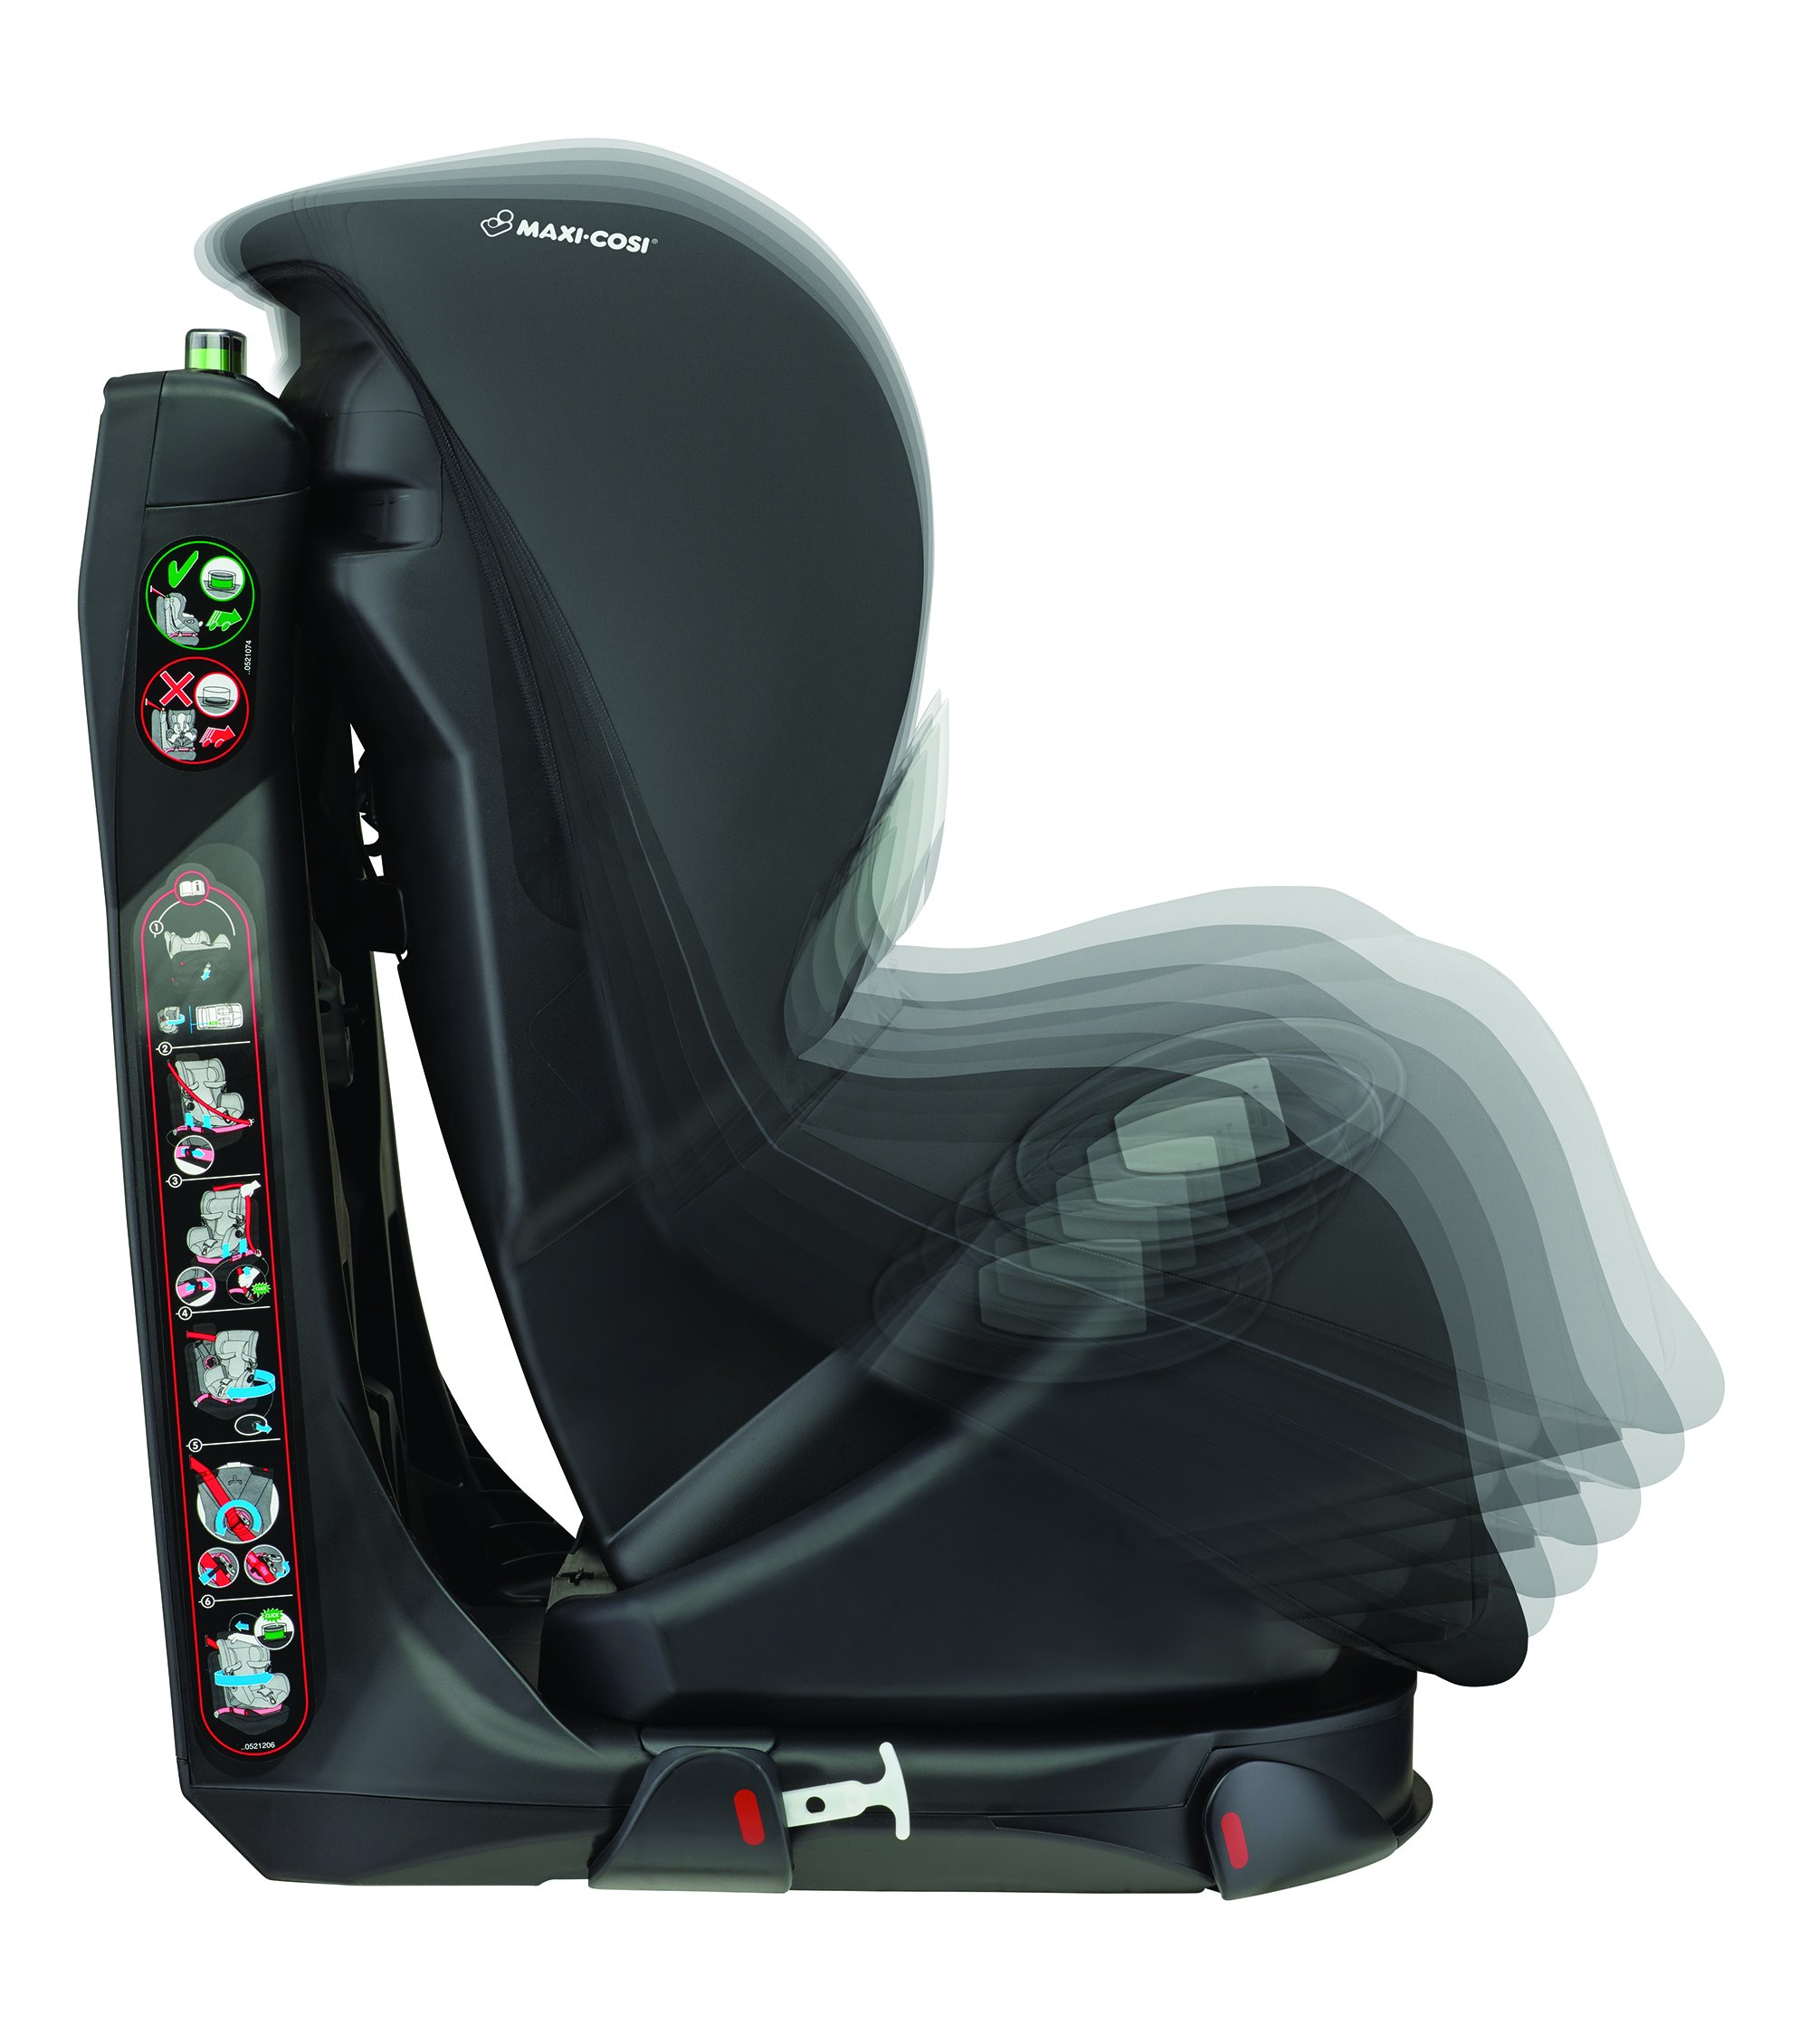 Maxi-Cosi Axiss Toddler Car Seat Group 1, Swivel Car Seat, 9 Months-4 Years, Nomad Black, 9-18 kg Maxi-Cosi Car seat swivels 90° degrees allows for front-on access to get your toddler in and out of the car more easily 8 comfortable recline positions. Machine washable cover at 30° Install using the car's seat belt and the integrated belt tensioner ensures a solid fit 4